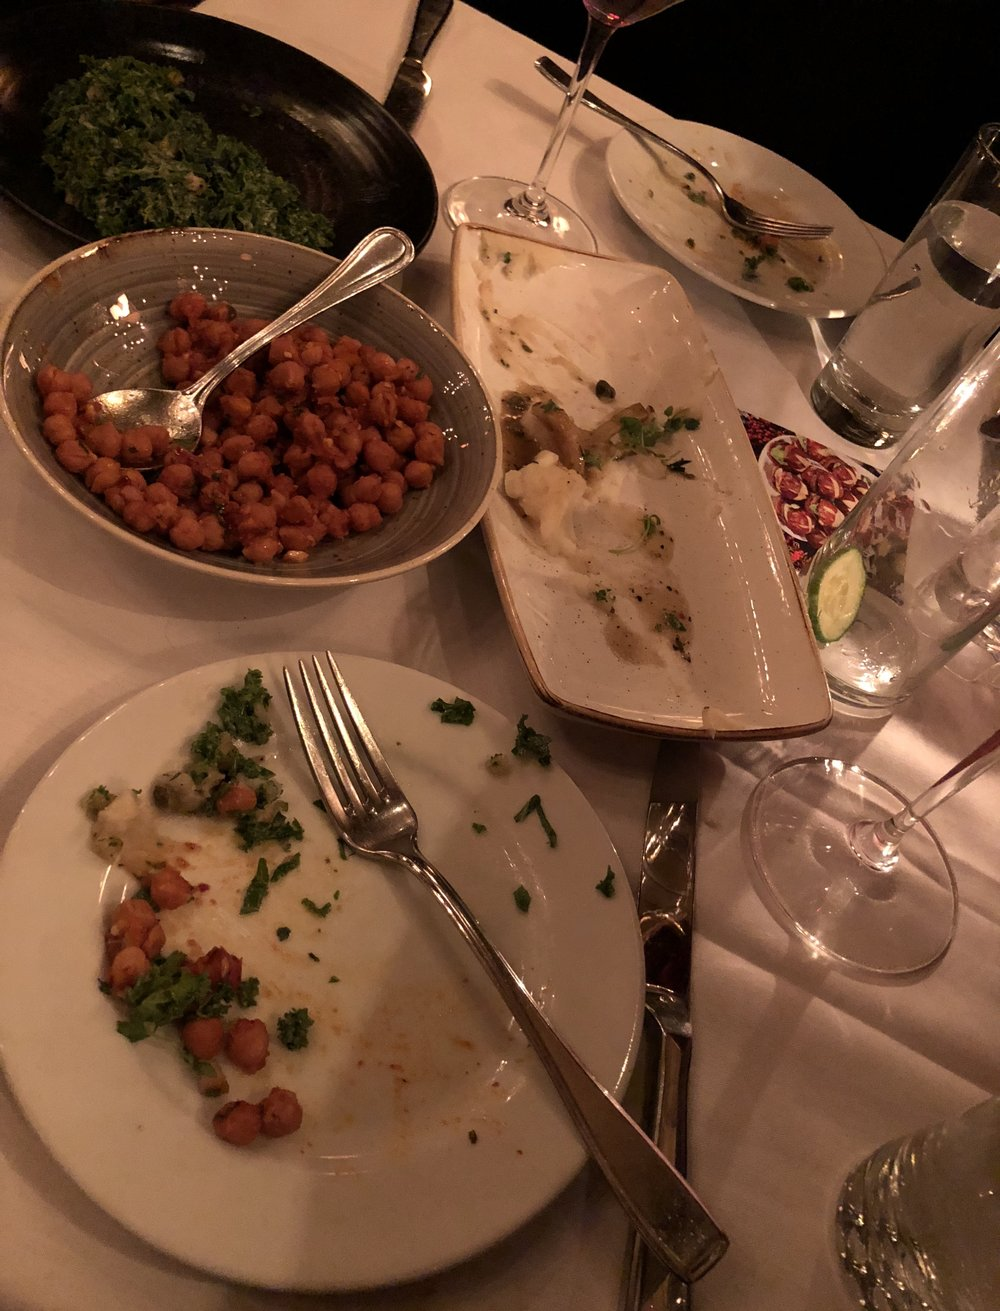 Plates cleared at Crossroads Kitchen